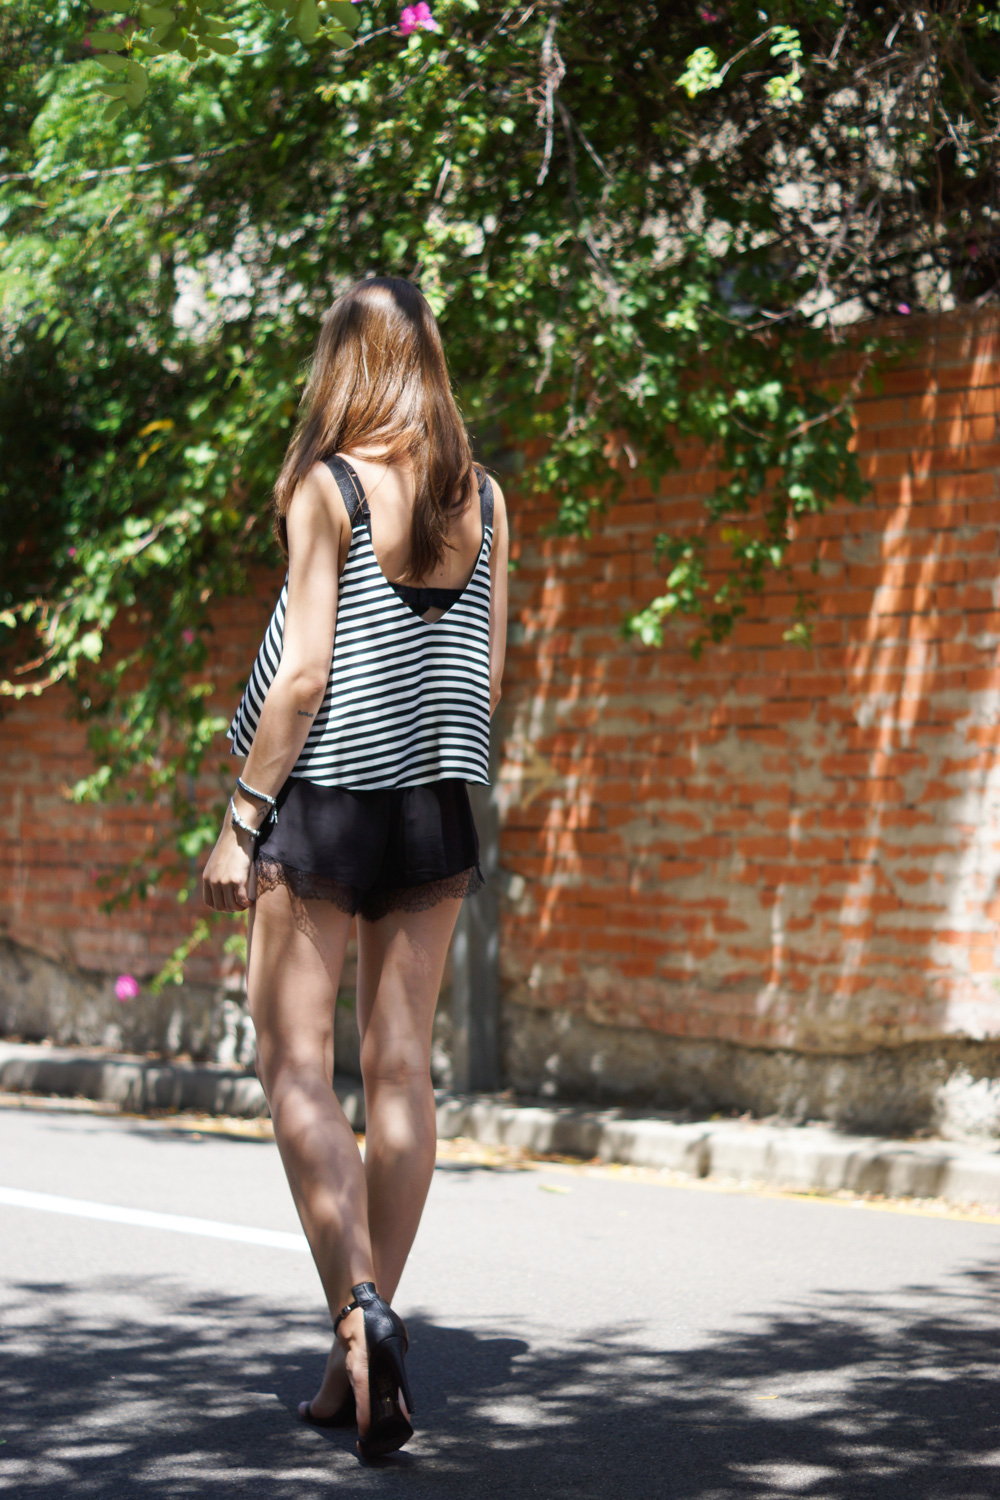 How to wear striped garments